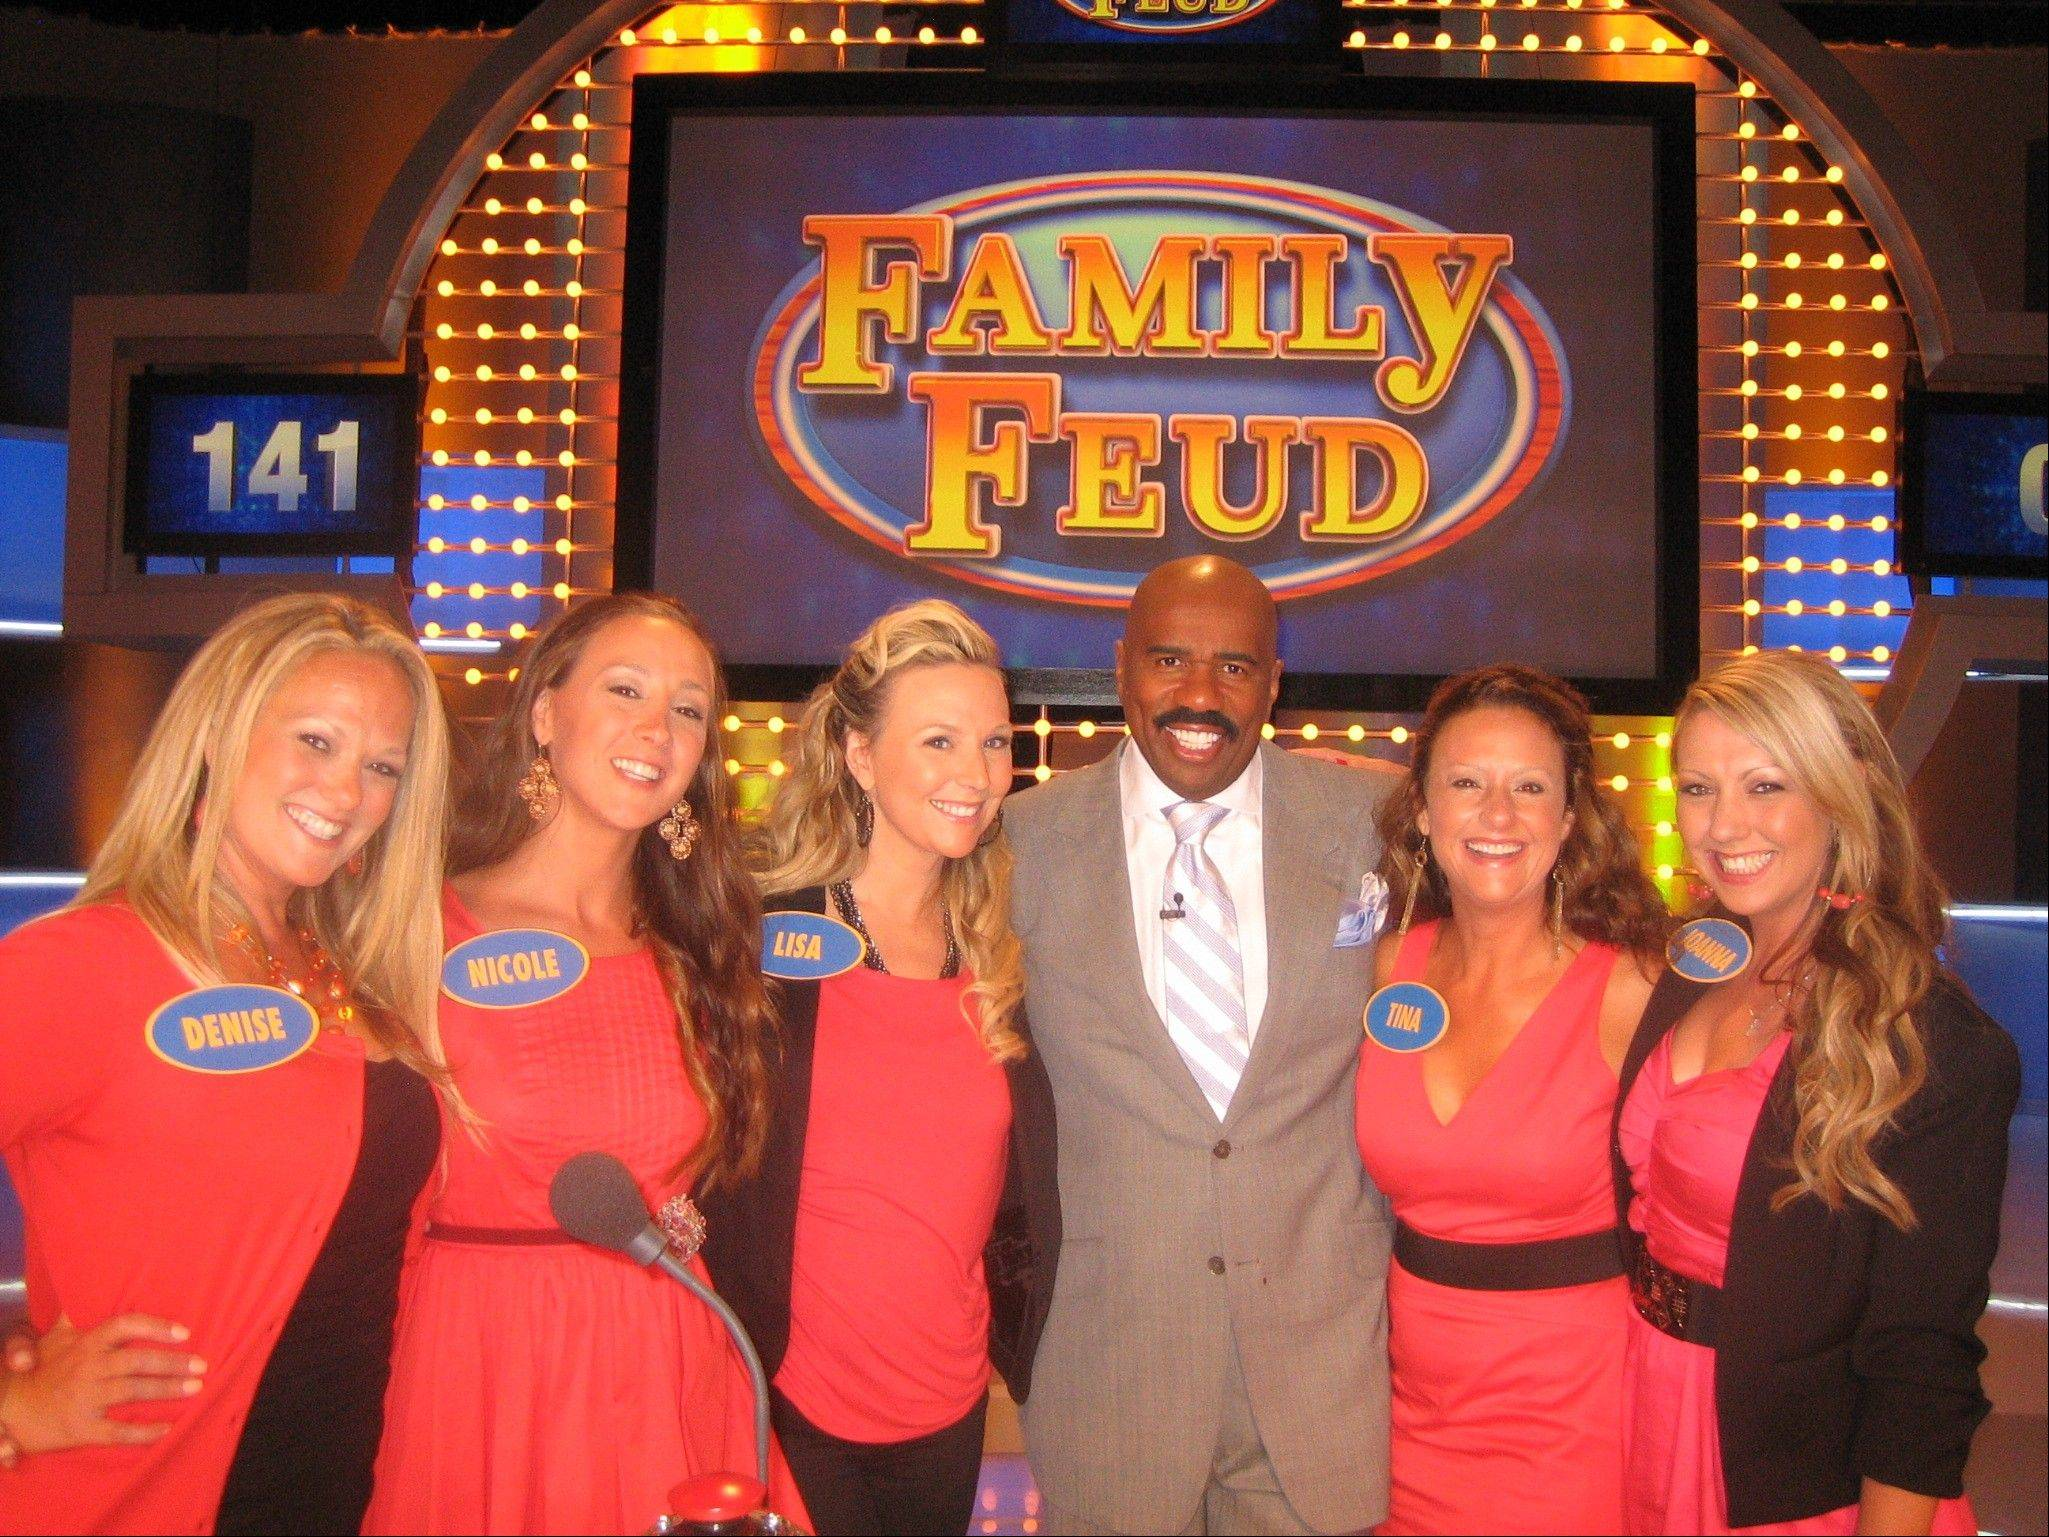 "Five sisters from the Northwest suburbs — Tina O'Donnell, 42, of Mount Prospect, Lisa Altmeyer, 40, of Elgin, Denise Spallone, 37, of Park Ridge, Nicole Dubak, 35, of Des Plaines, and Joanna Molnar, 32, of Park Ridge — are featured on tonight's episode of ""Family Feud"" after winning $20,500 in the first round Wednesday. The show, hosted by Steve Harvey, airs at 5 p.m. on WPWR-TV Channel 50. The siblings appear on the show again at 5 p.m. Friday."